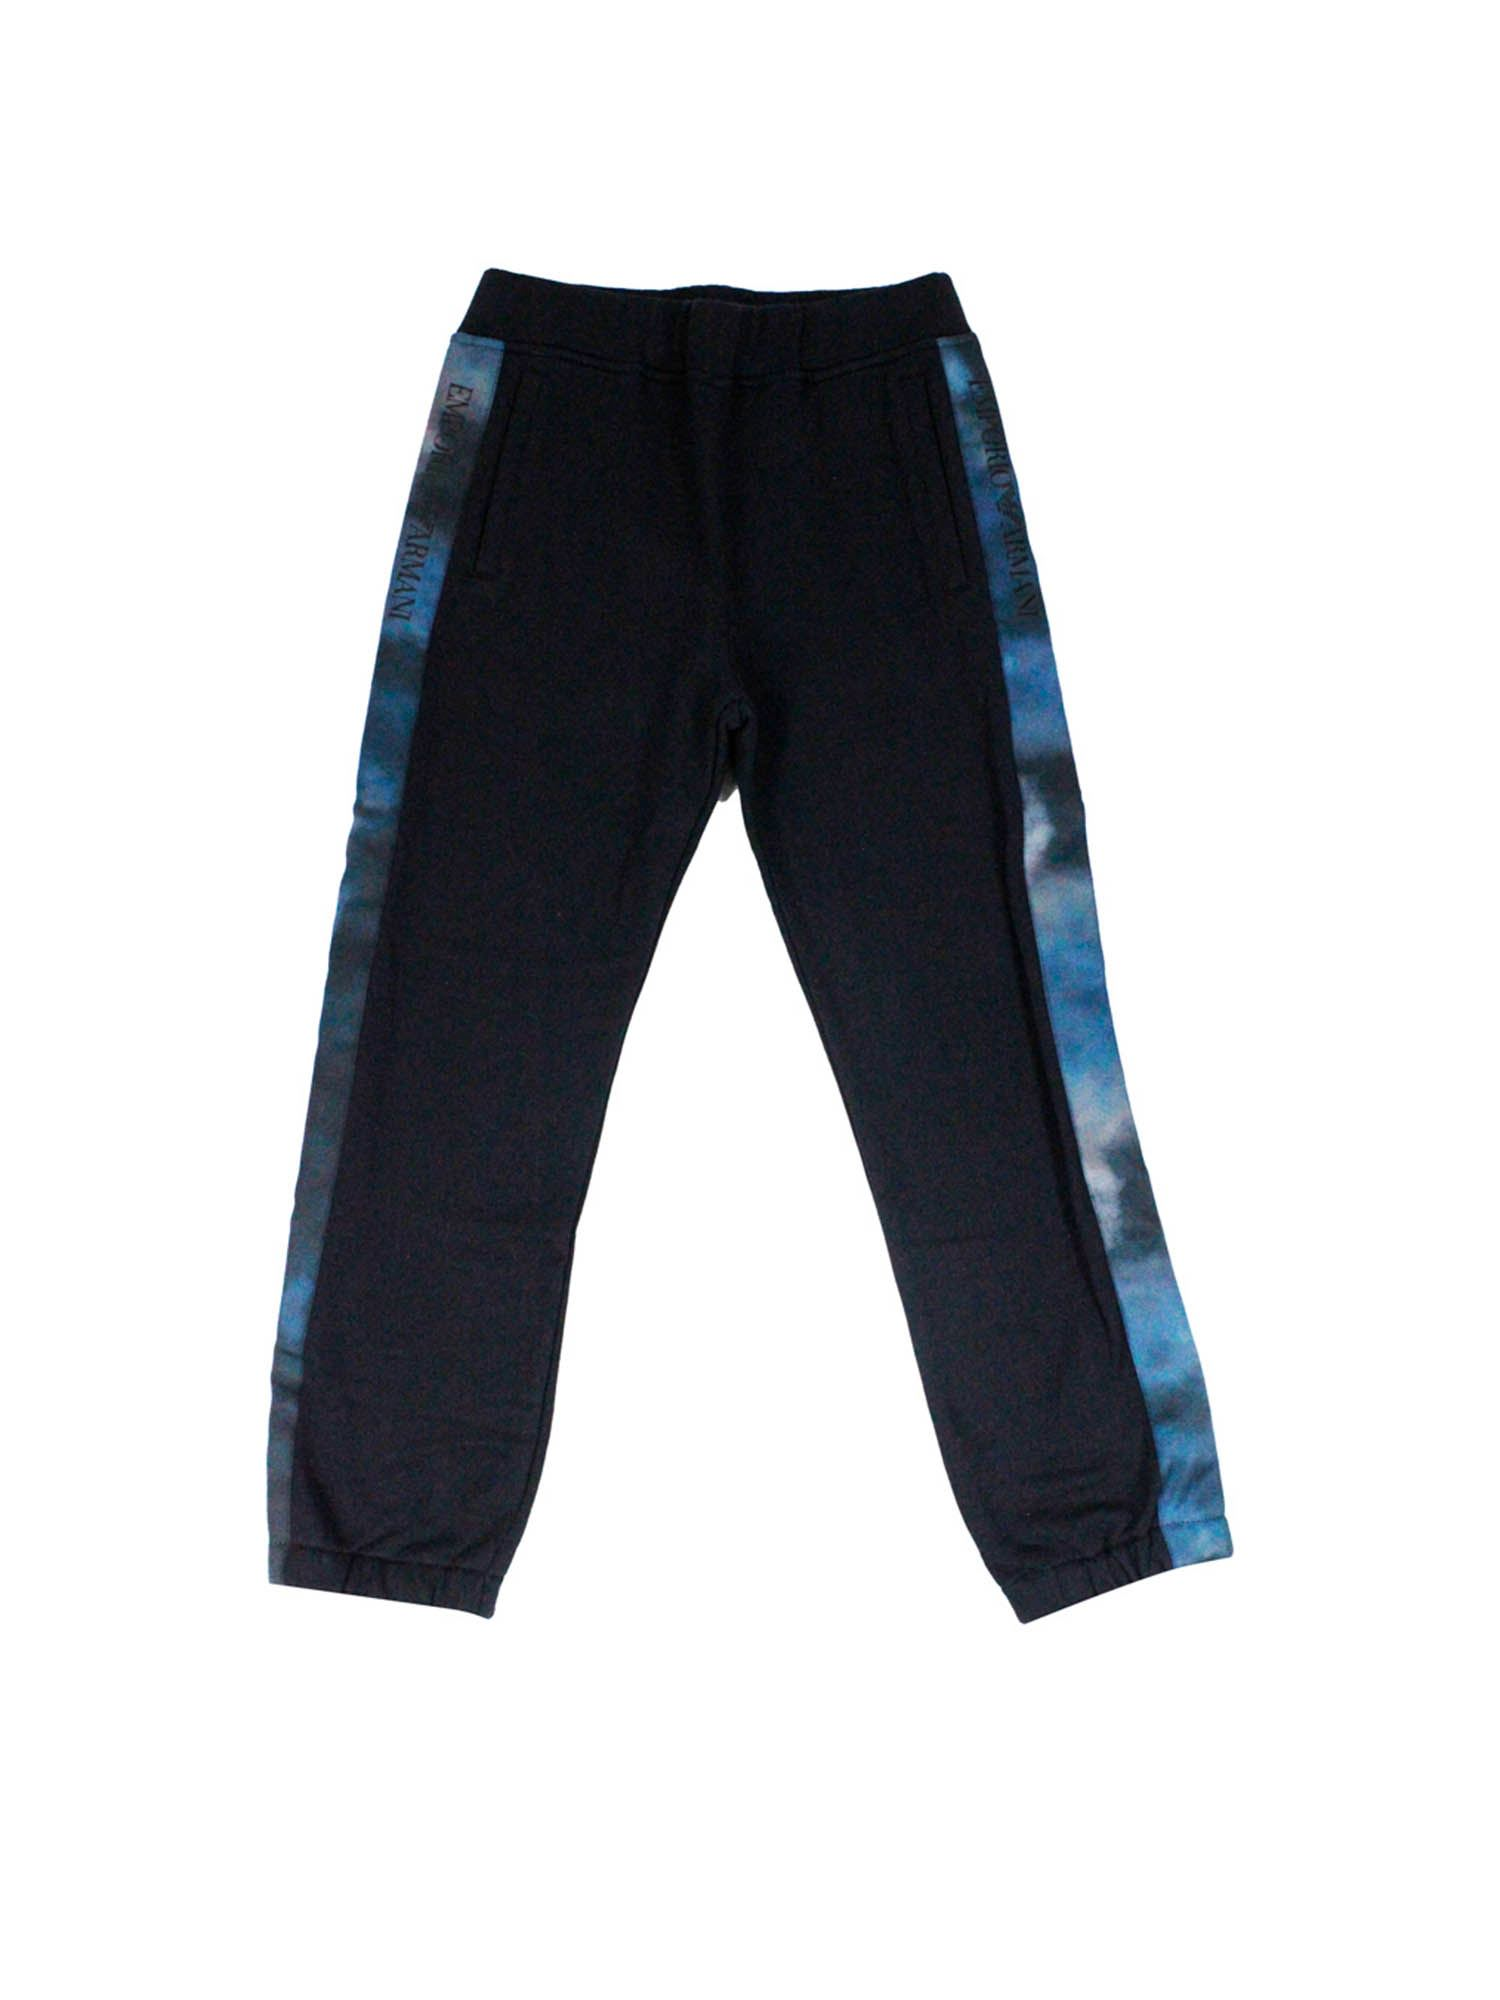 Emporio Armani SIDE BANDS PANTS IN BLUE